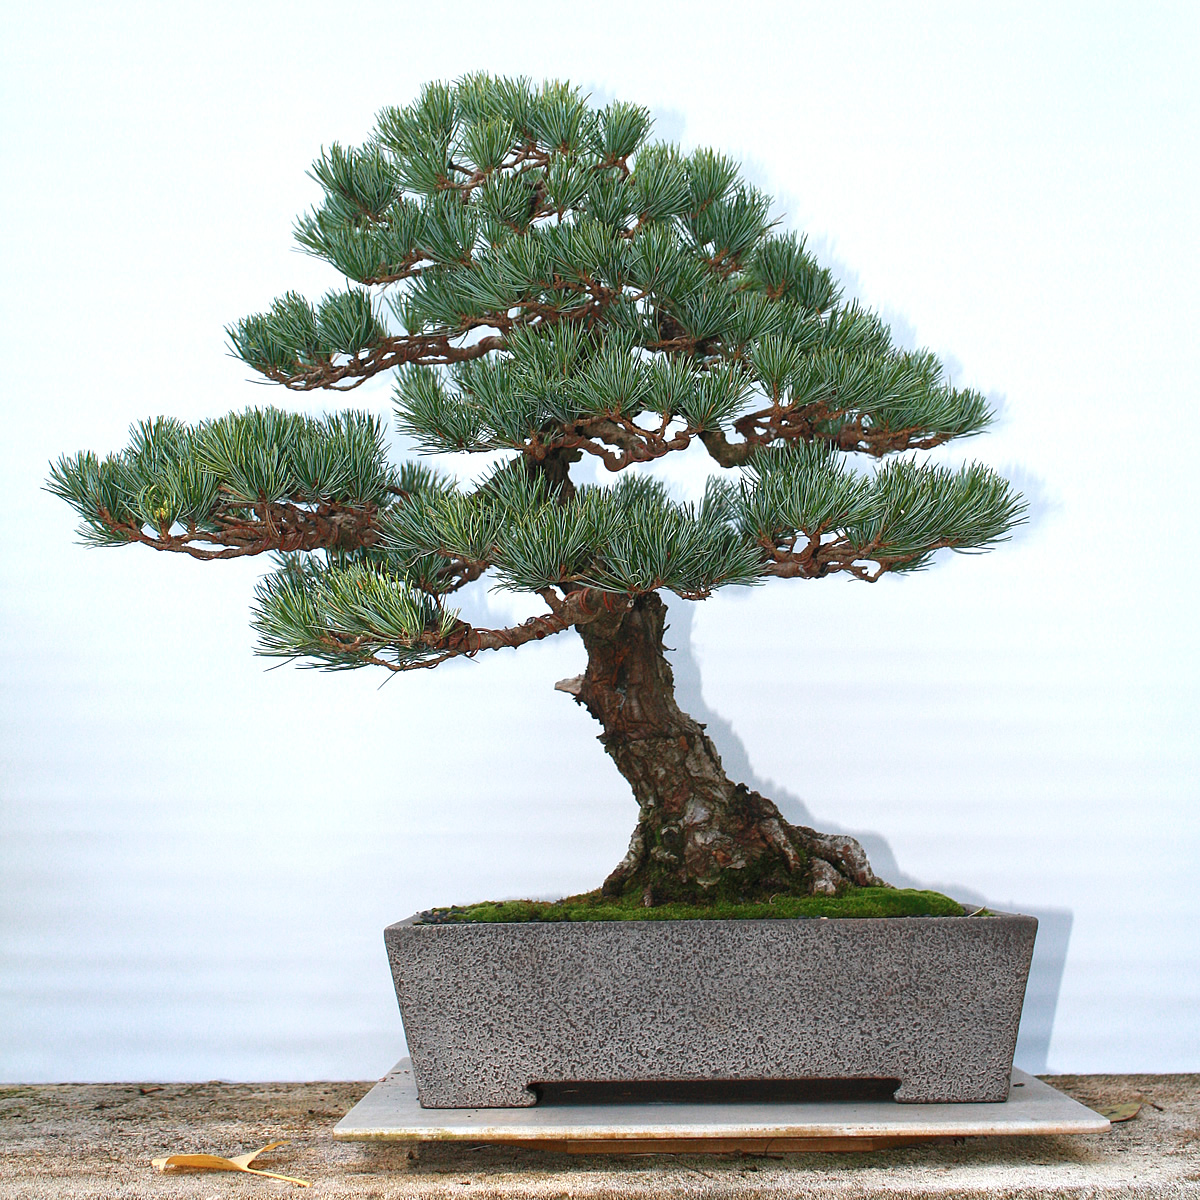 GoyoMatsu - Back from 2yrs on show at the National Bonsai Collection Canberra